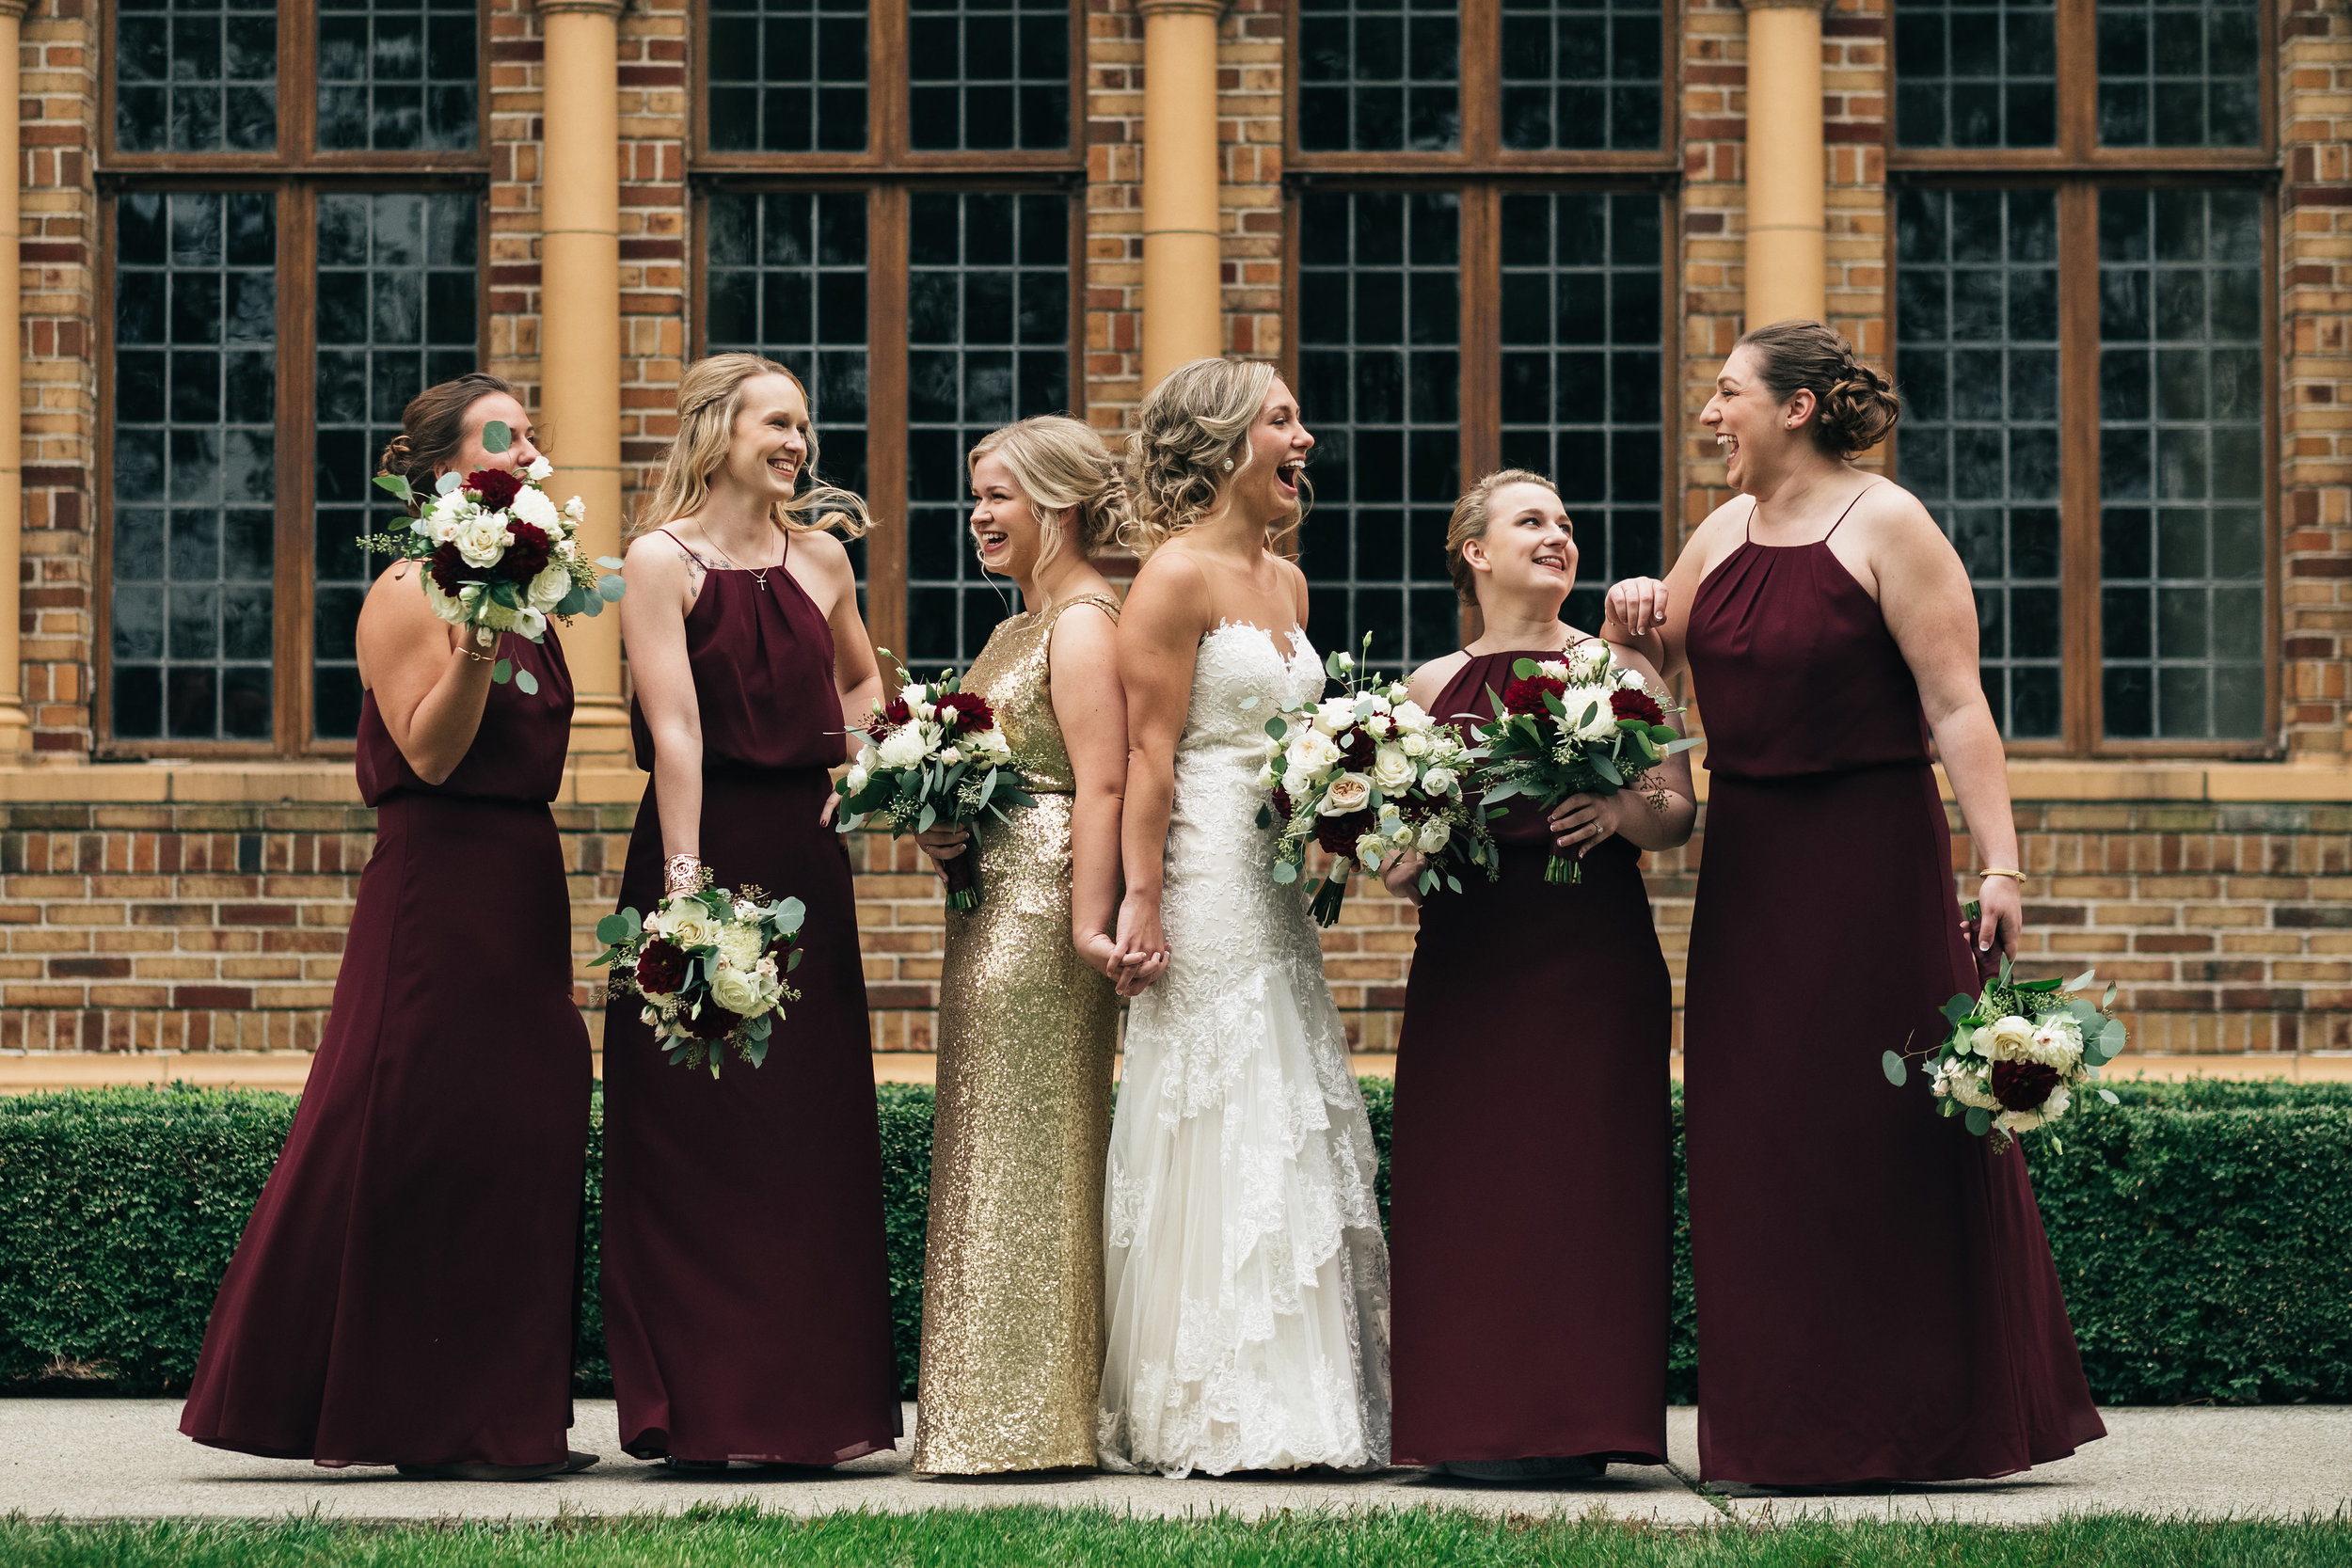 Bridesmaids Gather for Outdoor Bridal Party Photography